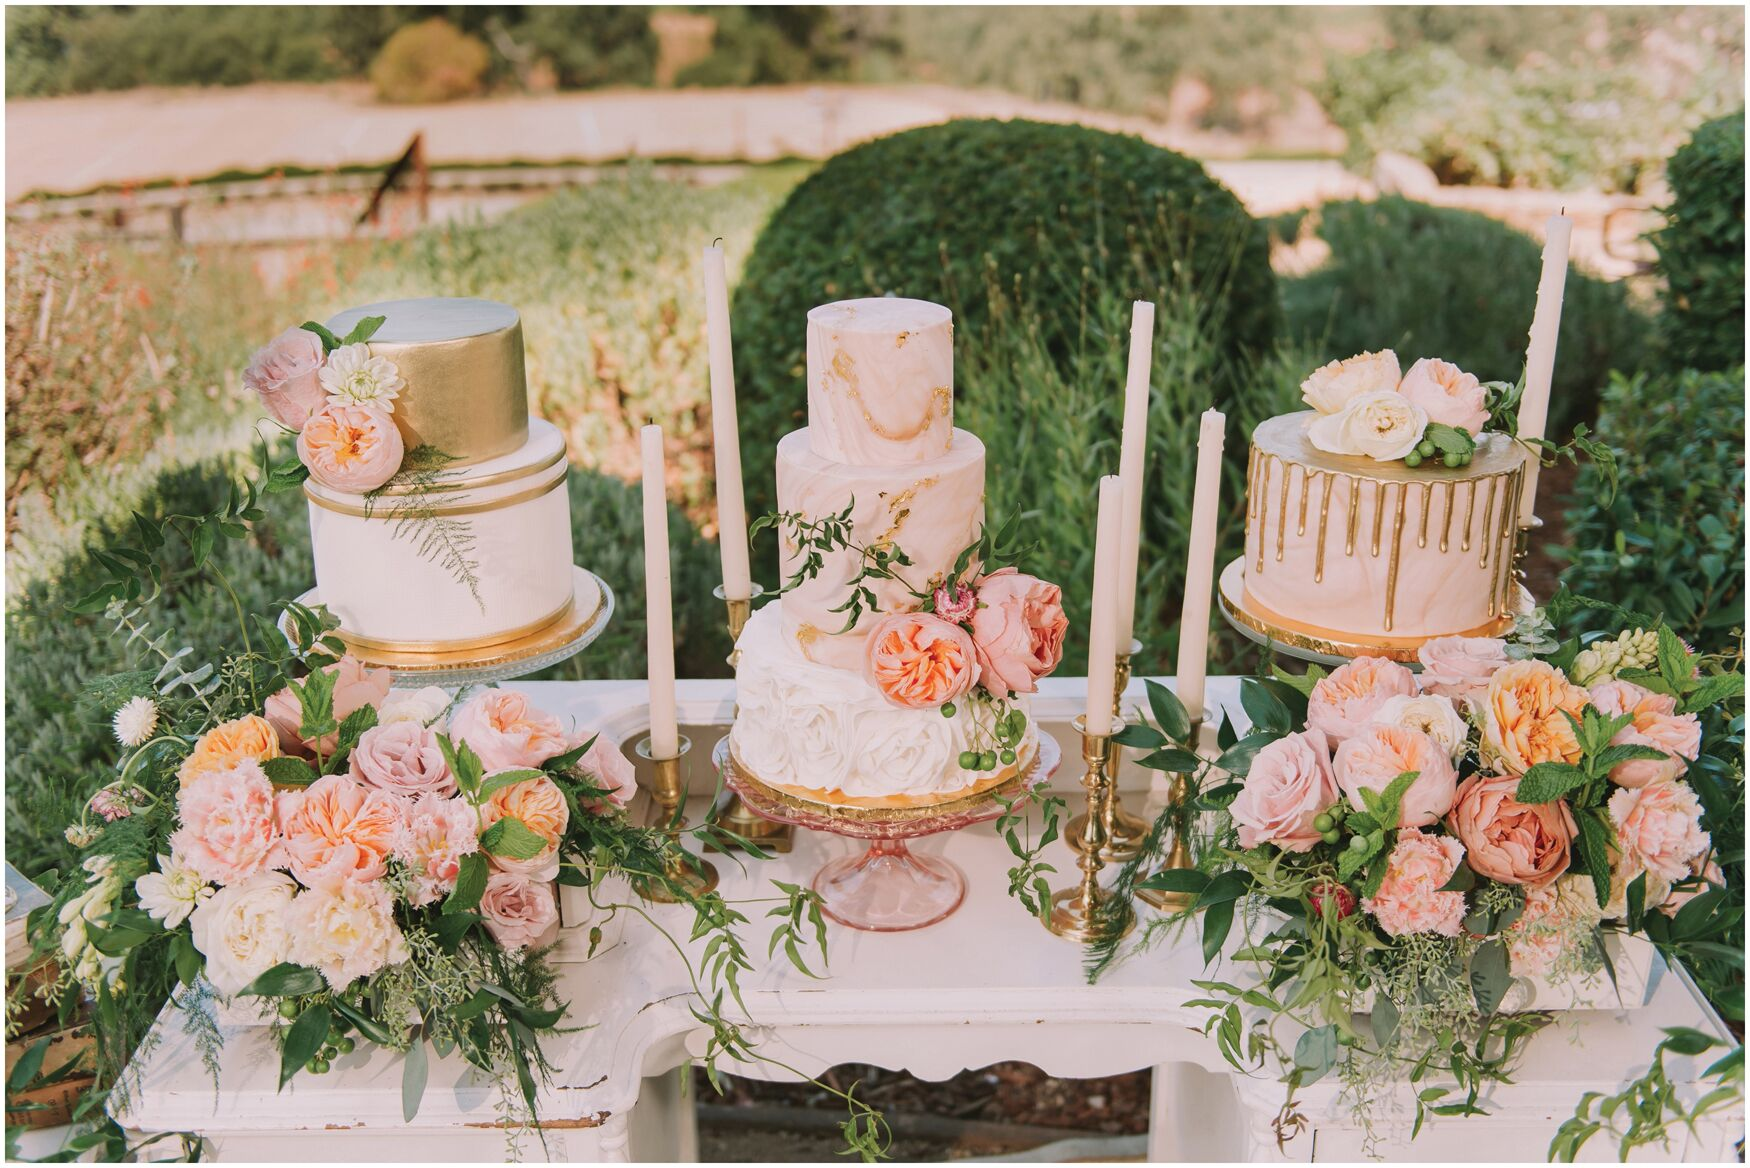 {Clear & Pink Glass Cake Stand}